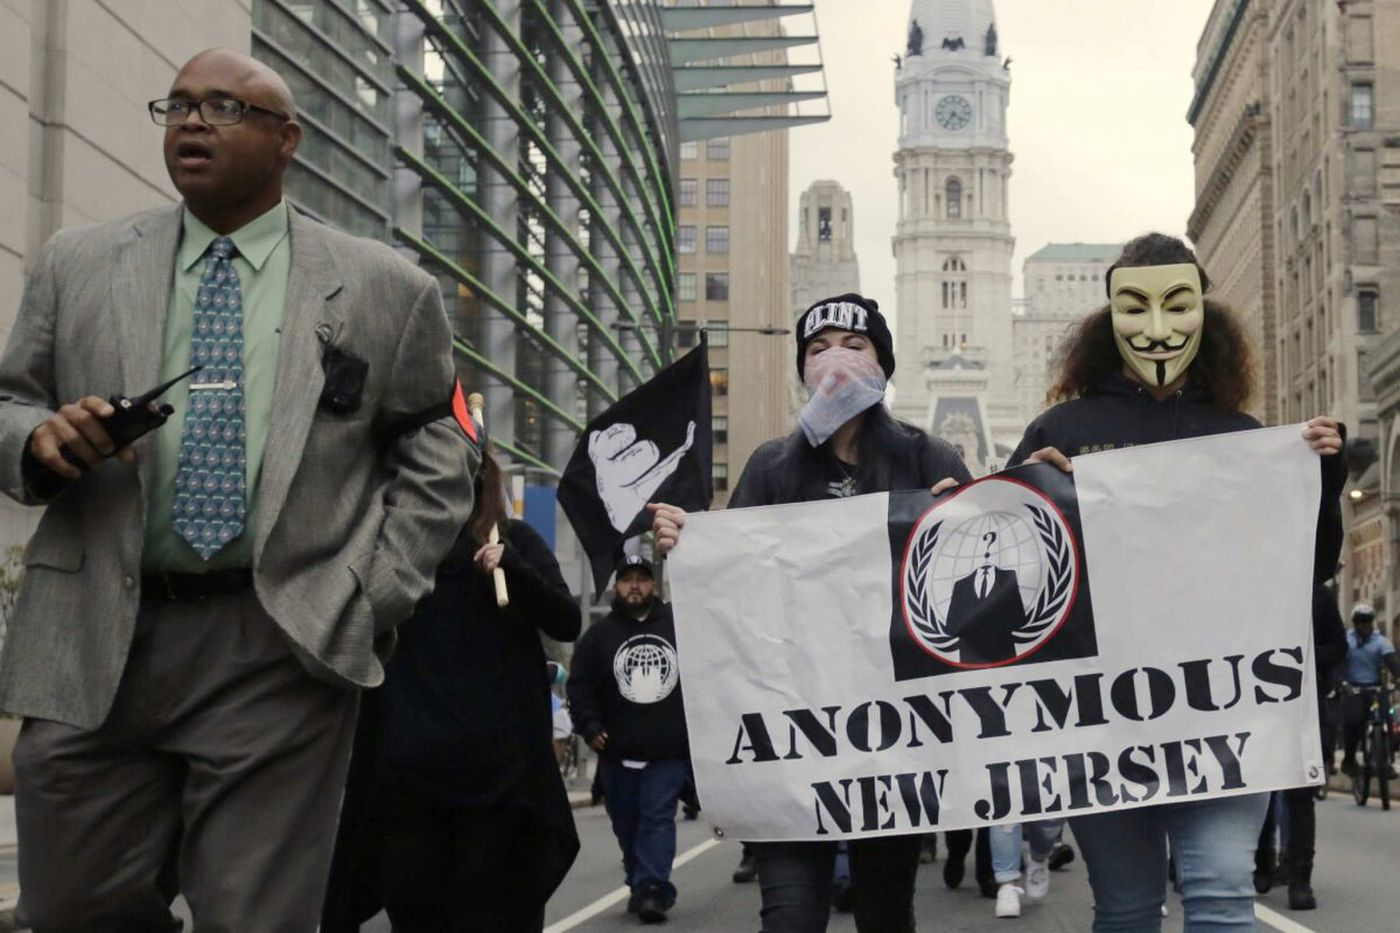 Anonymous' Million Mask March quiet, colorful in Philly